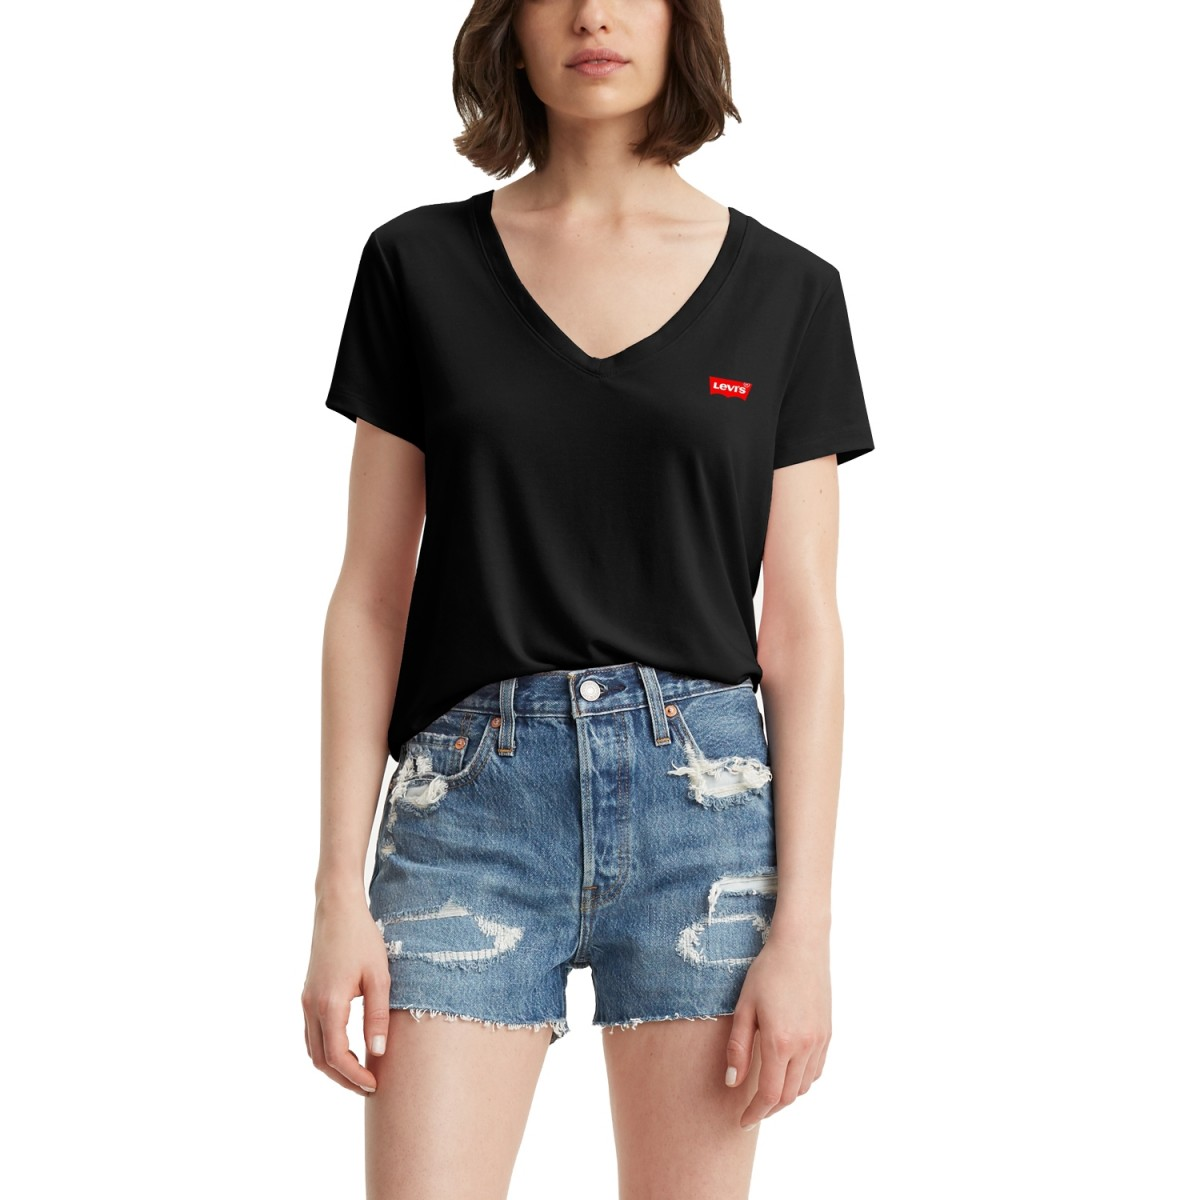 Levis Perfect V-Neck Tee